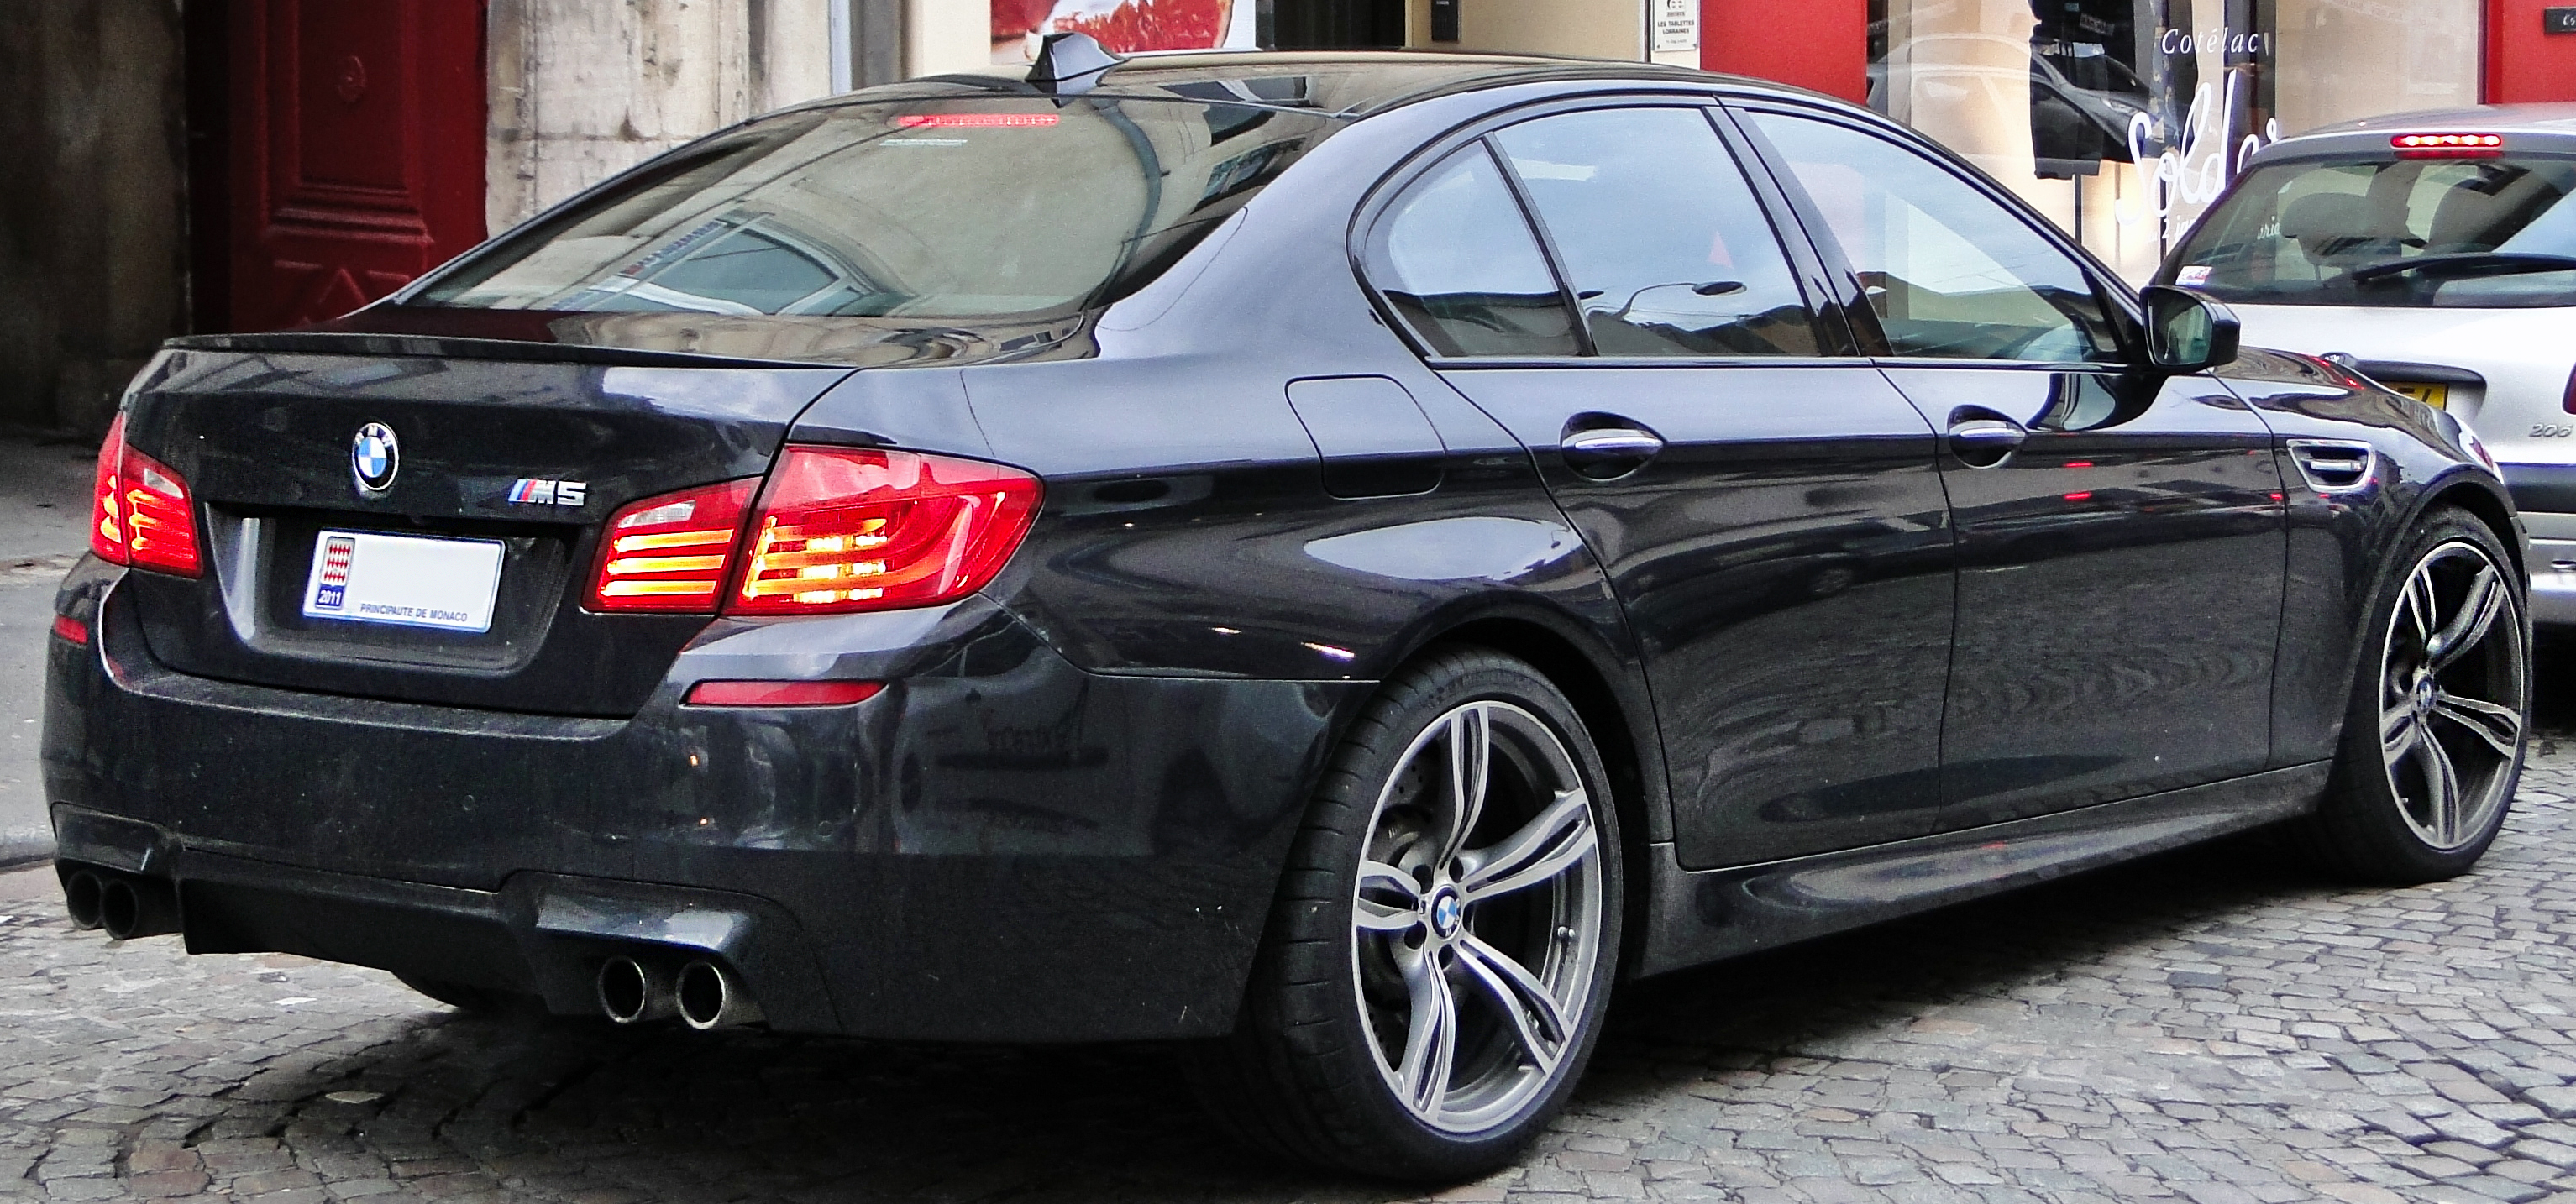 BMW M5 | Wiki | Everipedia, the encyclopedia of everything